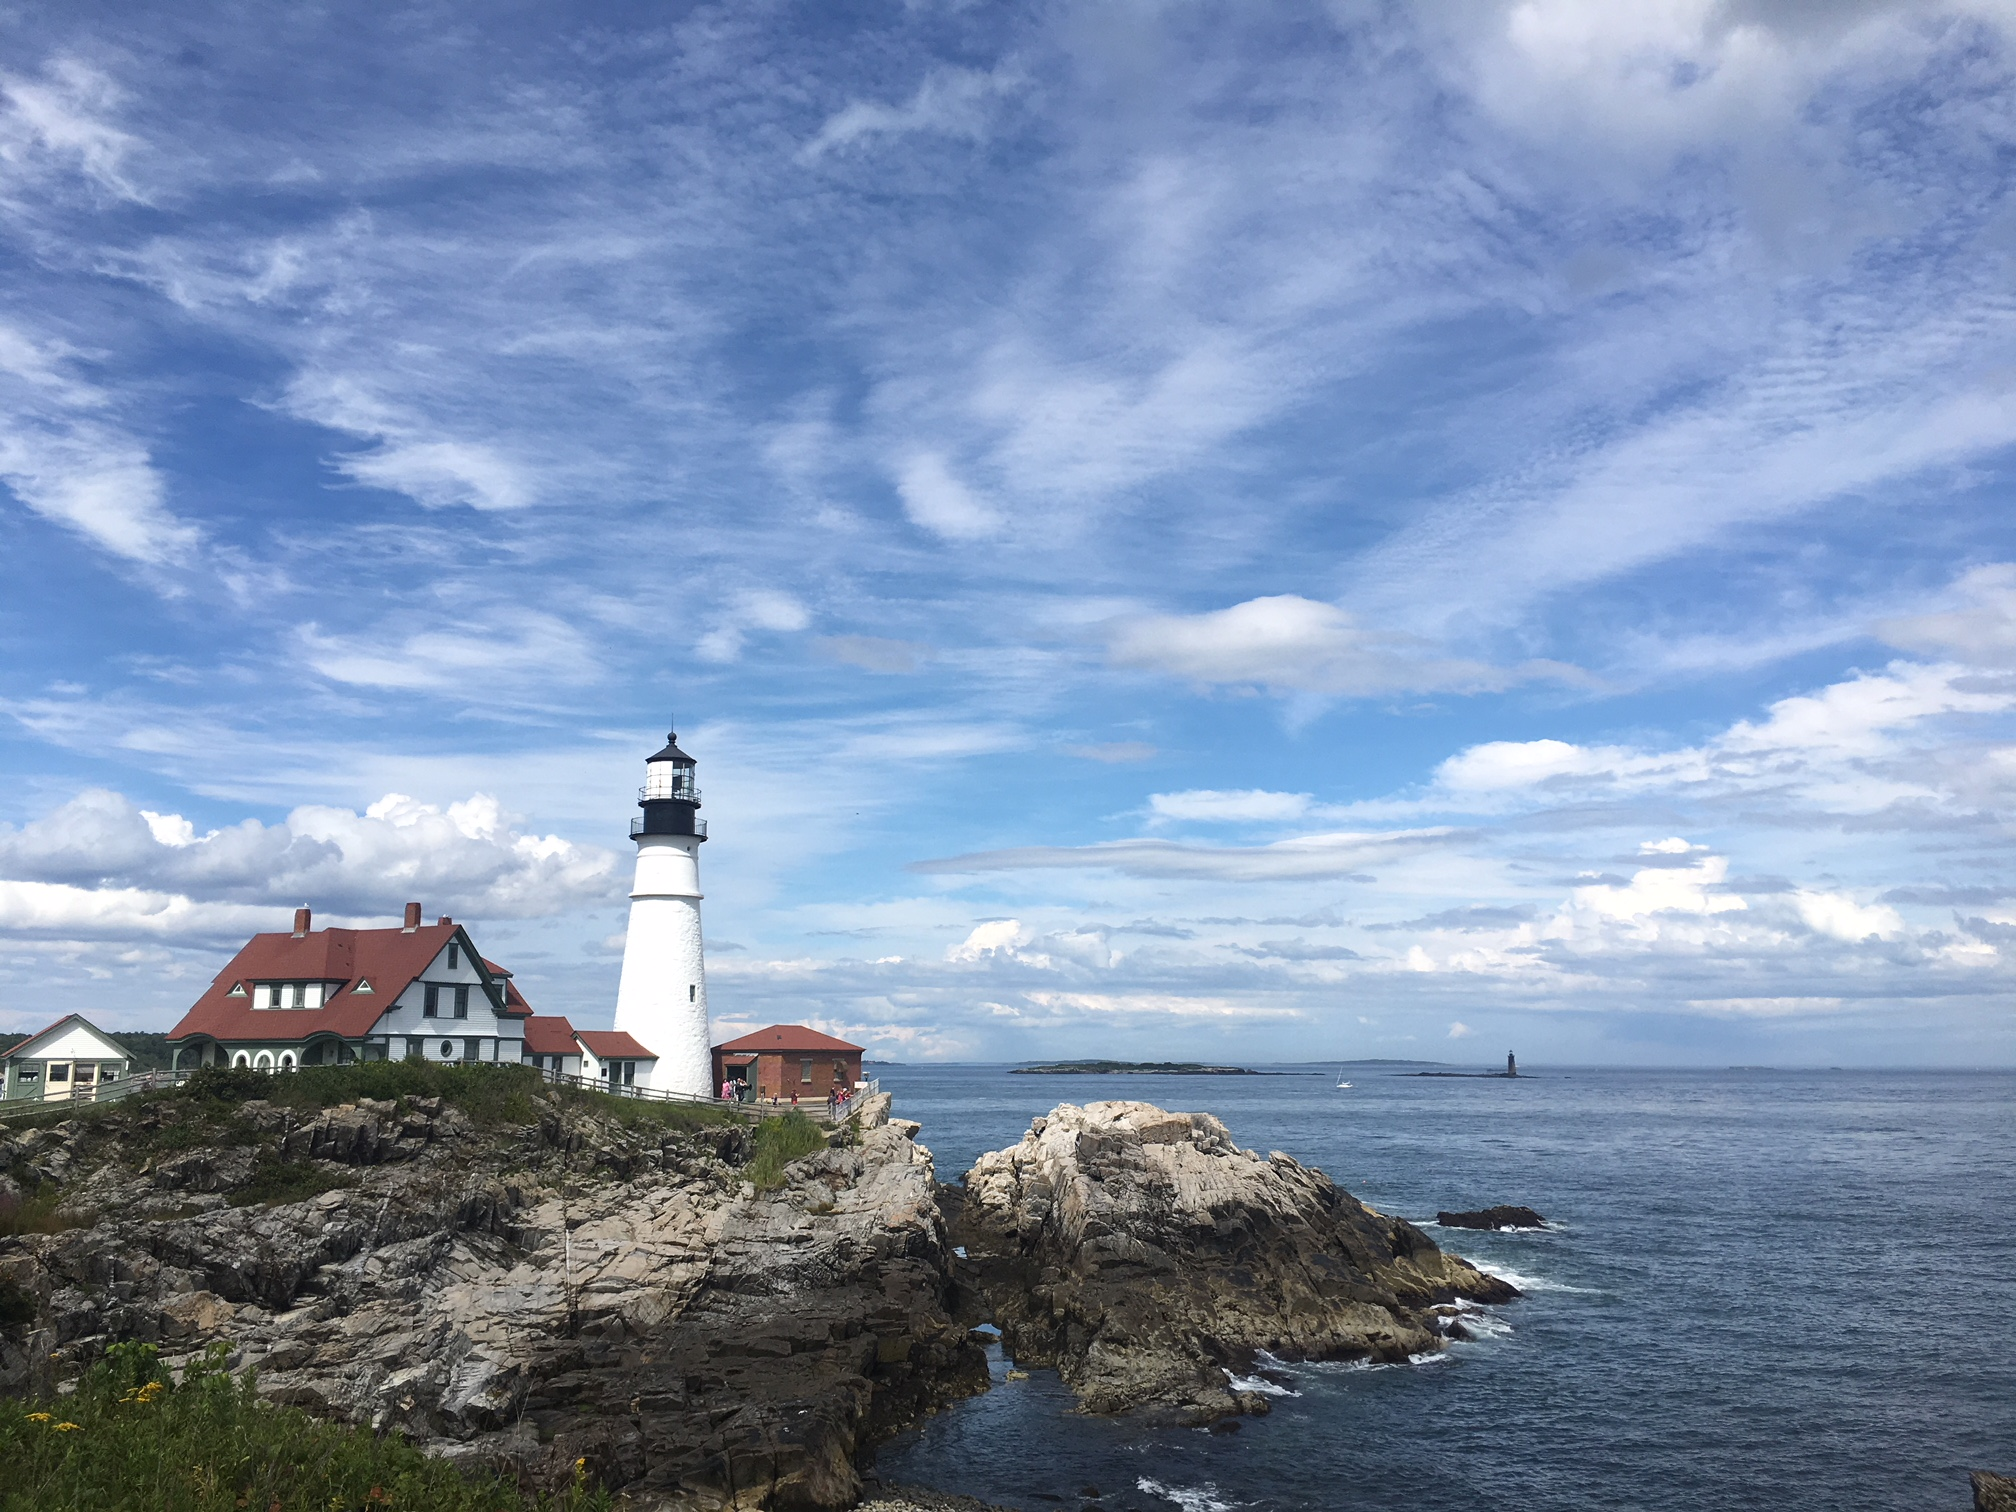 The Portland Headlight on Cape Elizabeth is one of the most photographed lighthouses in the world.